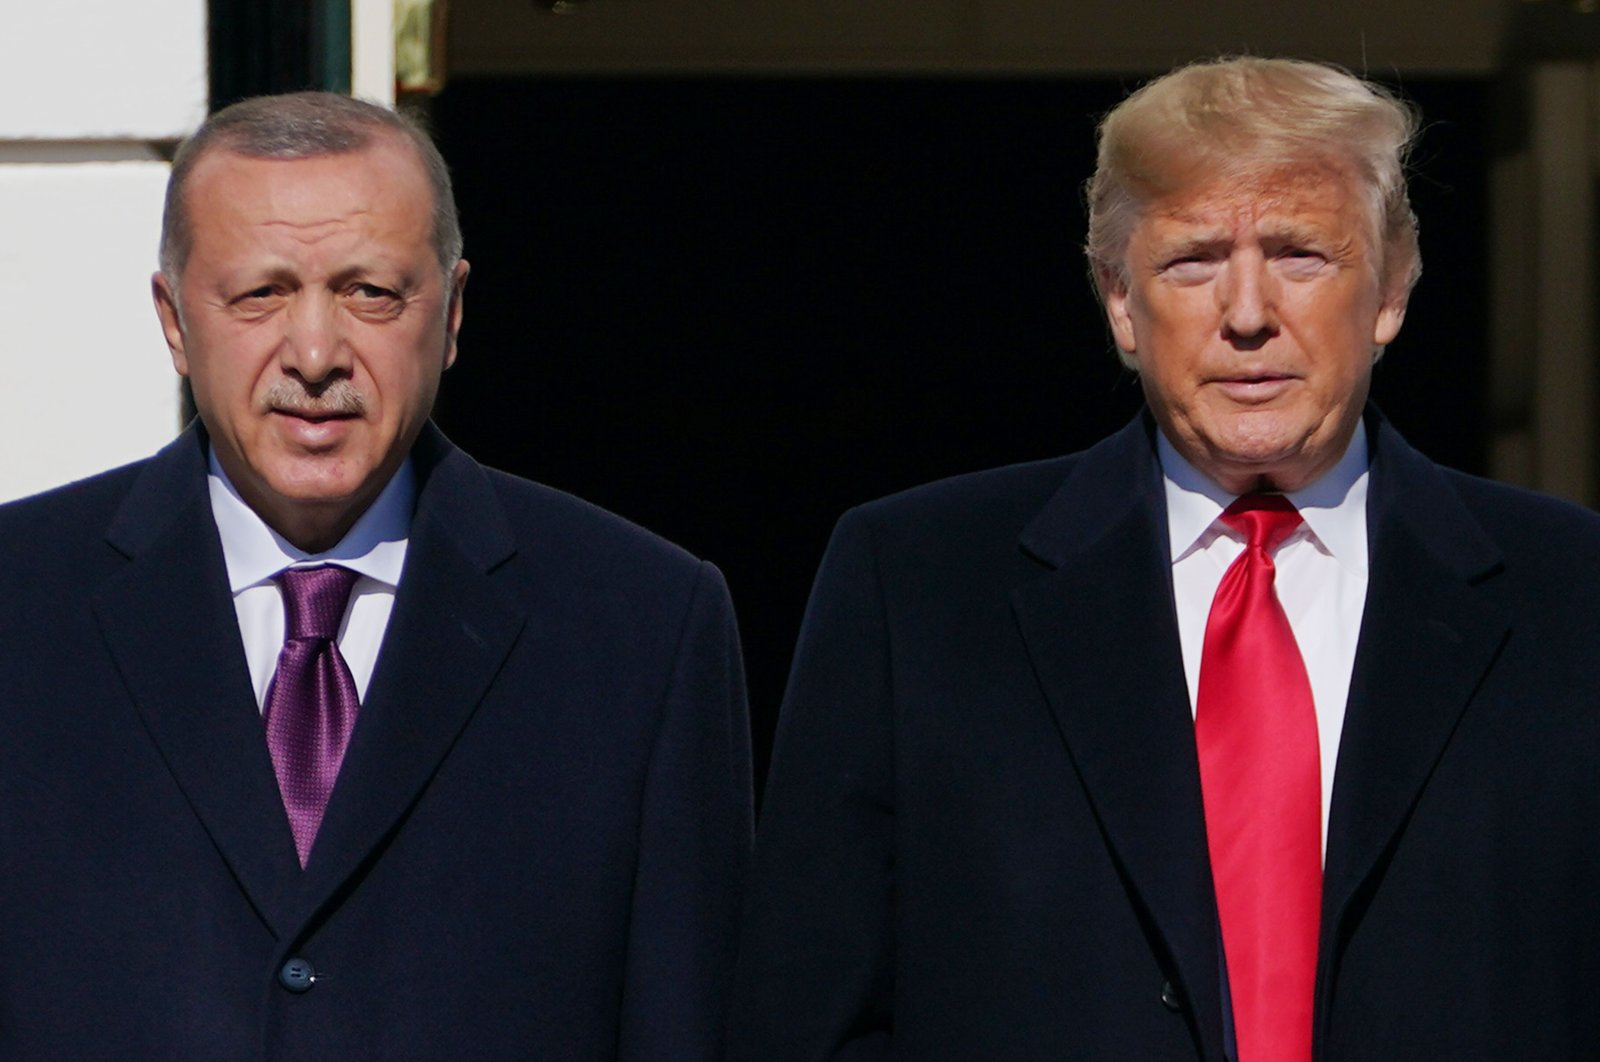 President Recep Tayyip Erdoğan is greeted by U.S. President Donald Trump upon arrival outside the White House in Washington, D.C., U.S., Nov. 13, 2019. (AFP Photo)